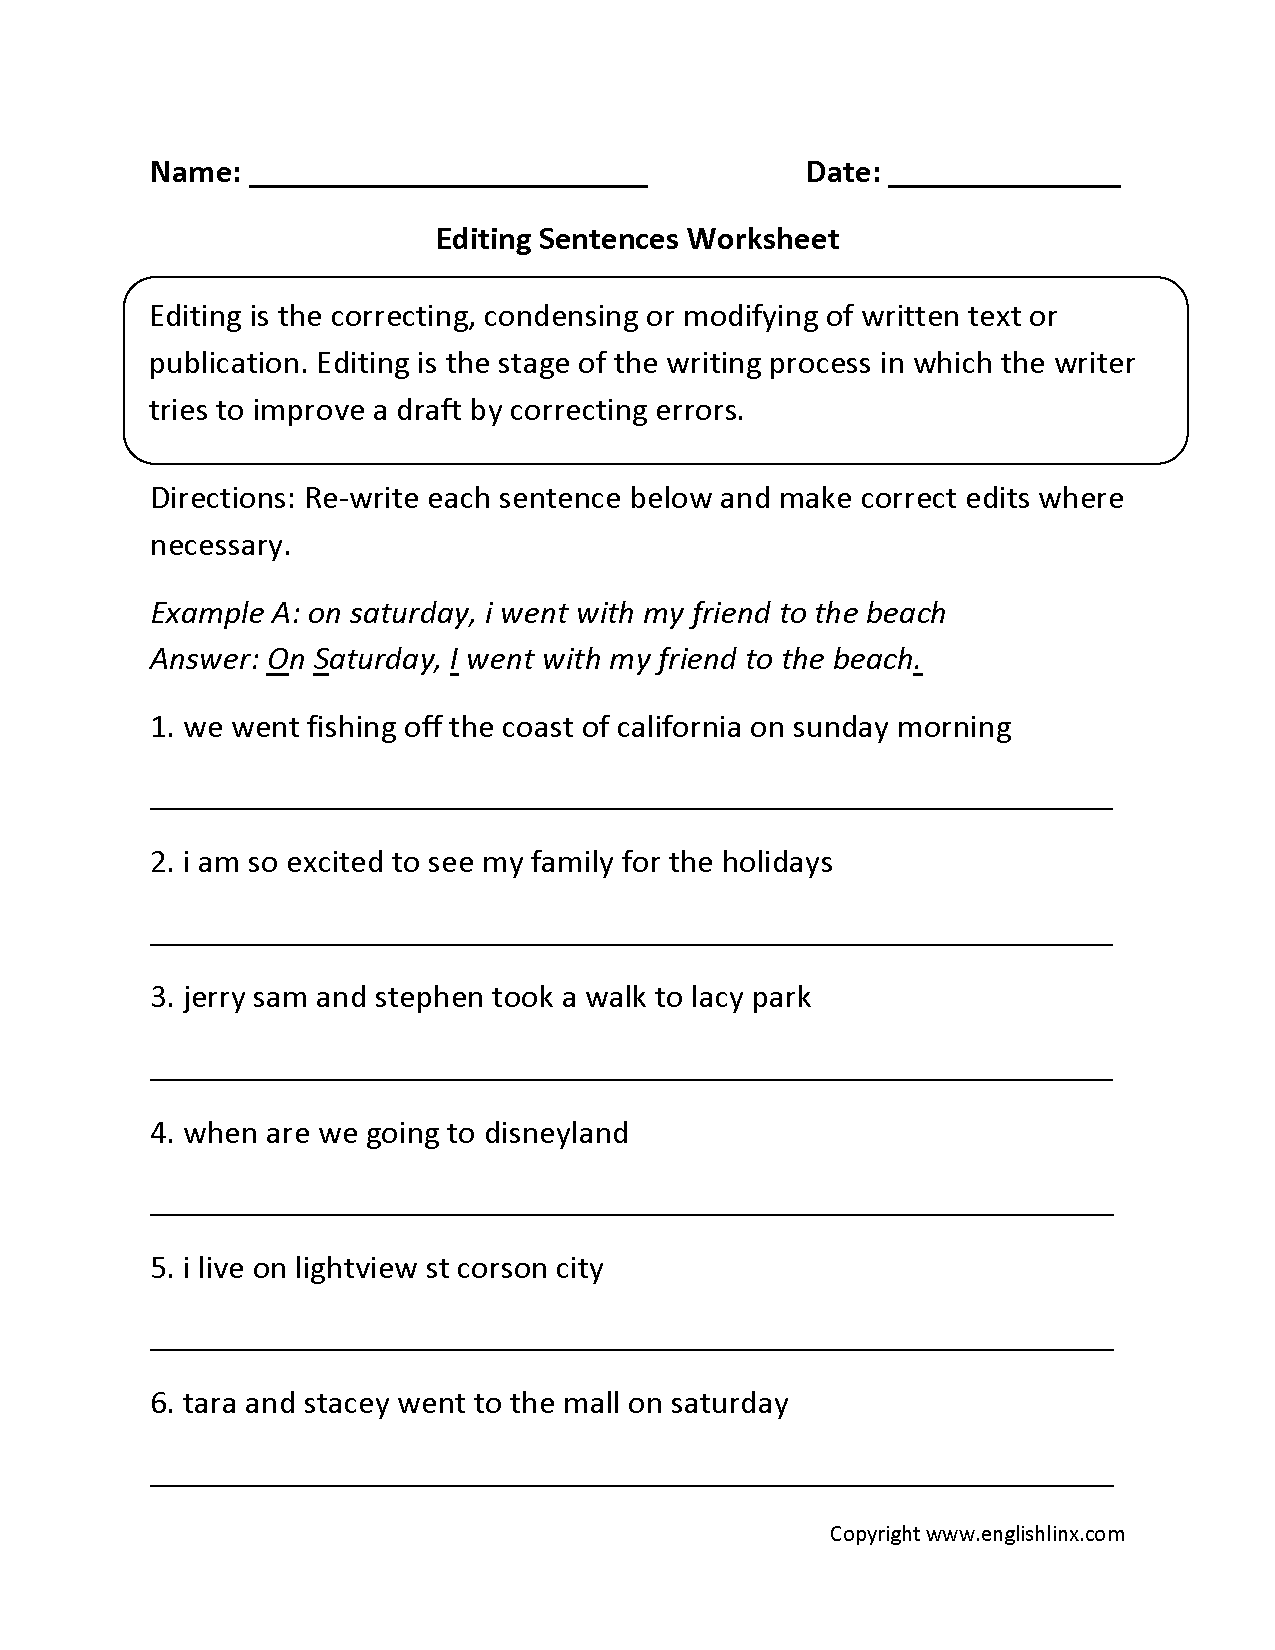 Worksheets Editing Worksheet writing worksheets editing worksheets